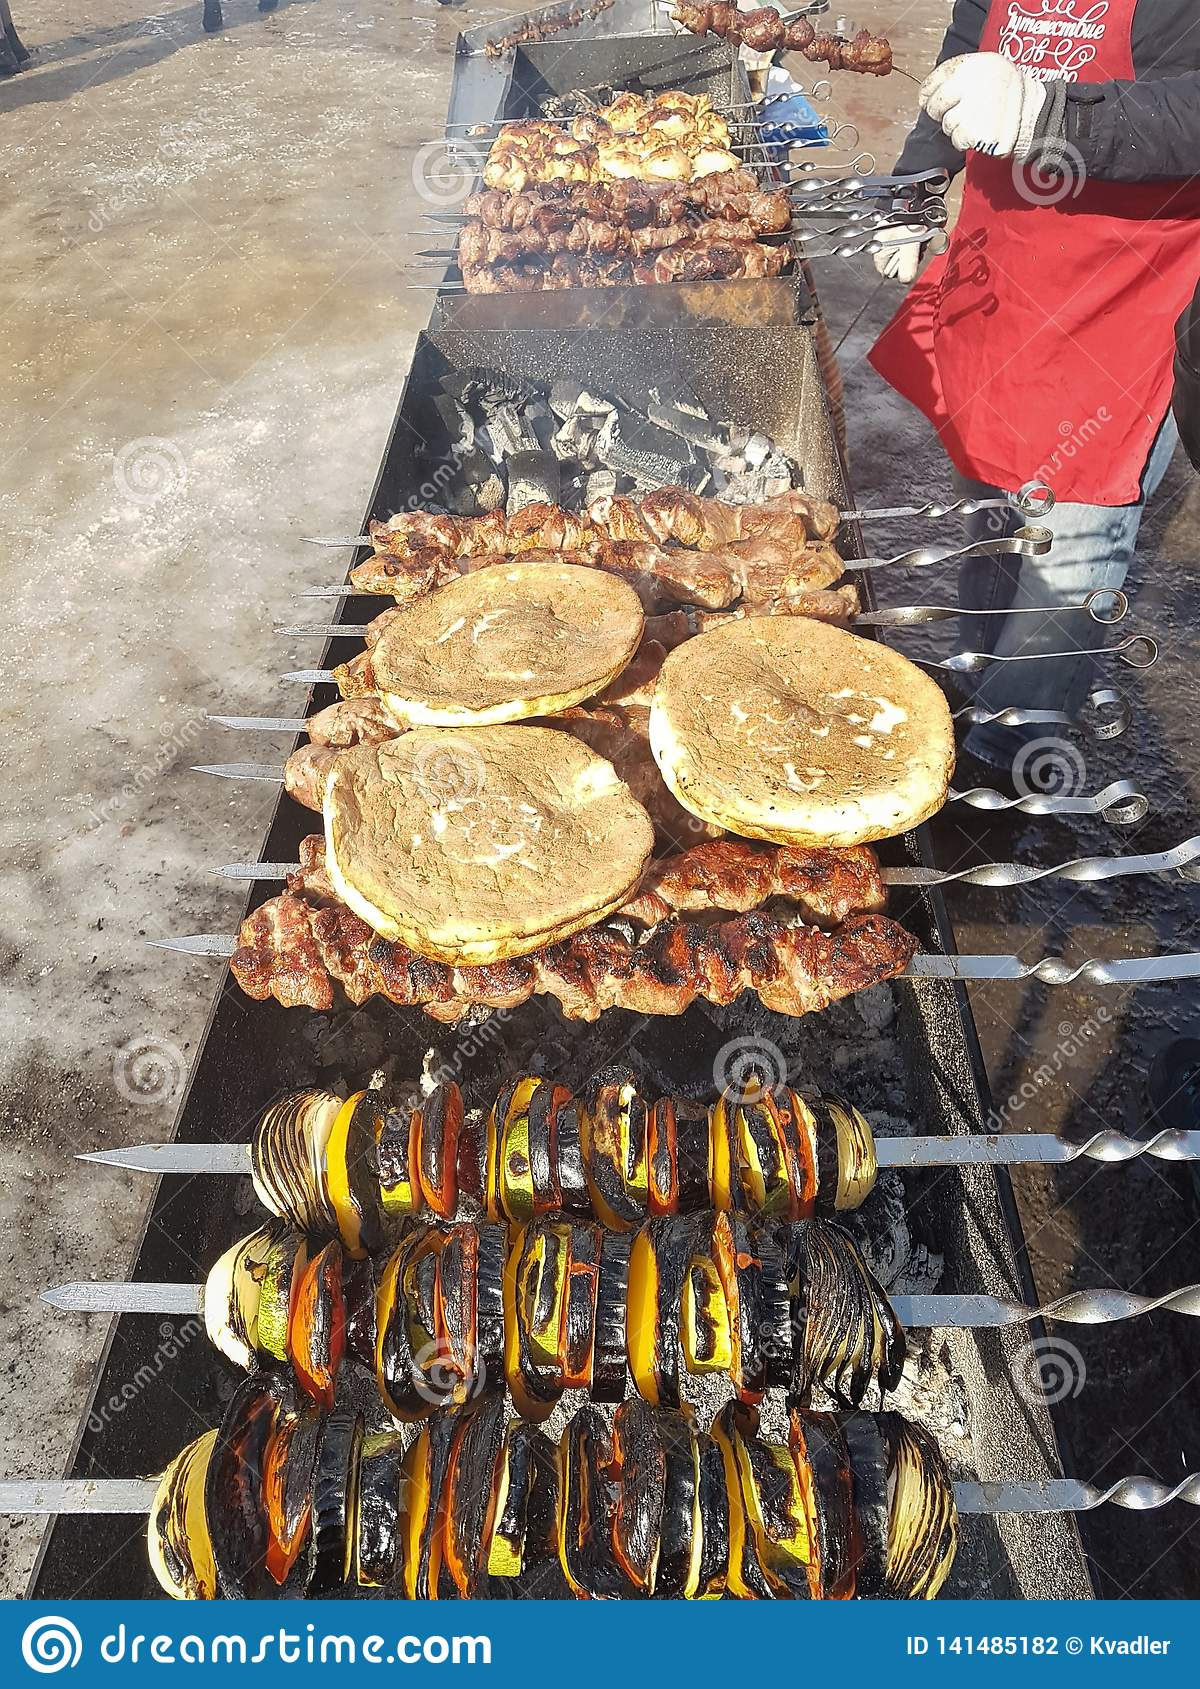 Juicy marinated in spices meat kebab on skewers, cooked and fried on a fire and charcoal barbecue grill, in the nature of snowy